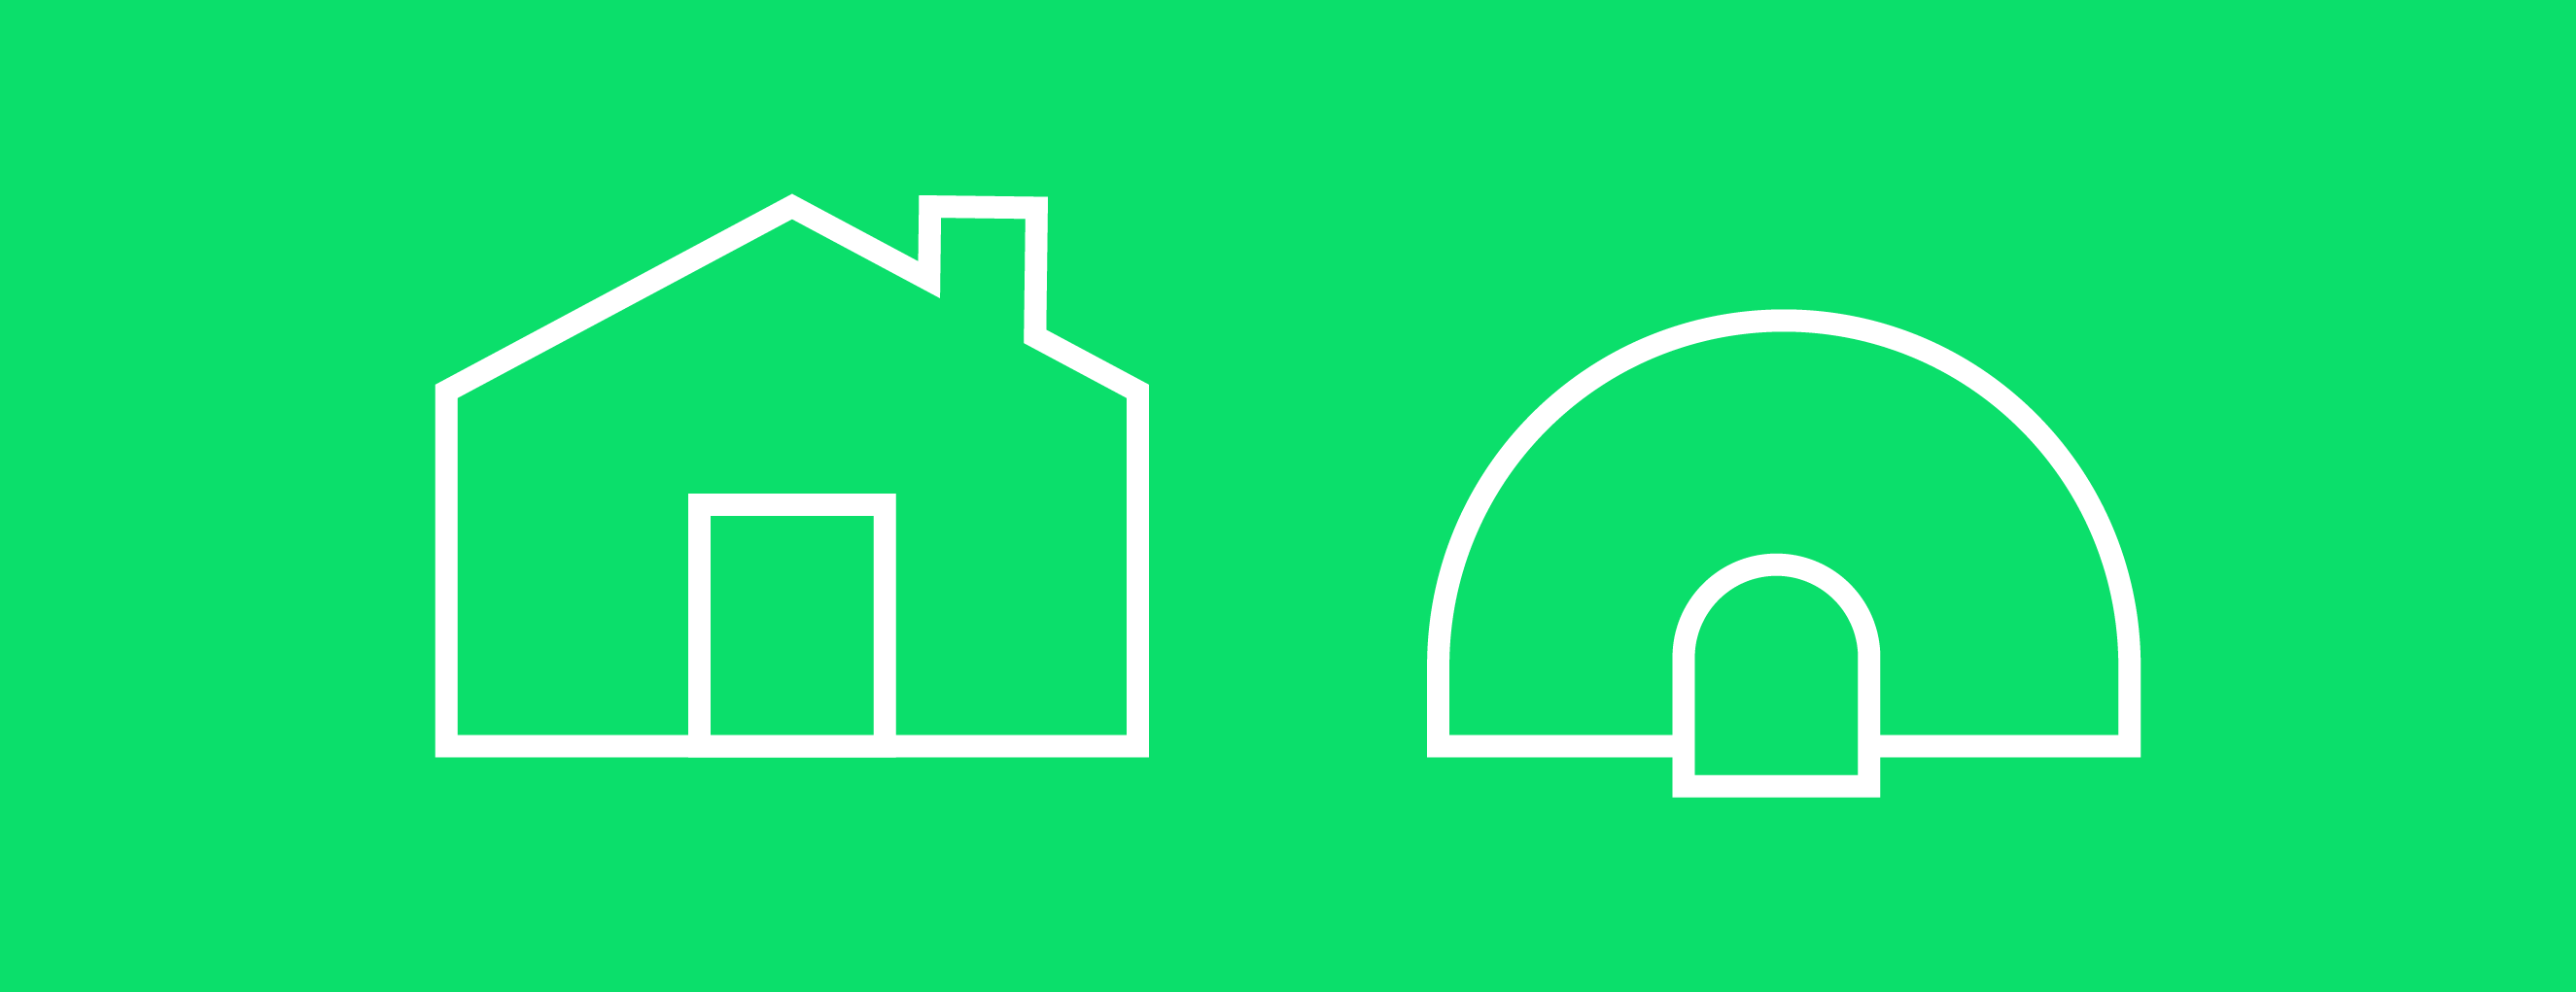 Homes come in different shapes around the world. Not many people live in Igloos, but if you did, it might change your expectation of a Home button design.